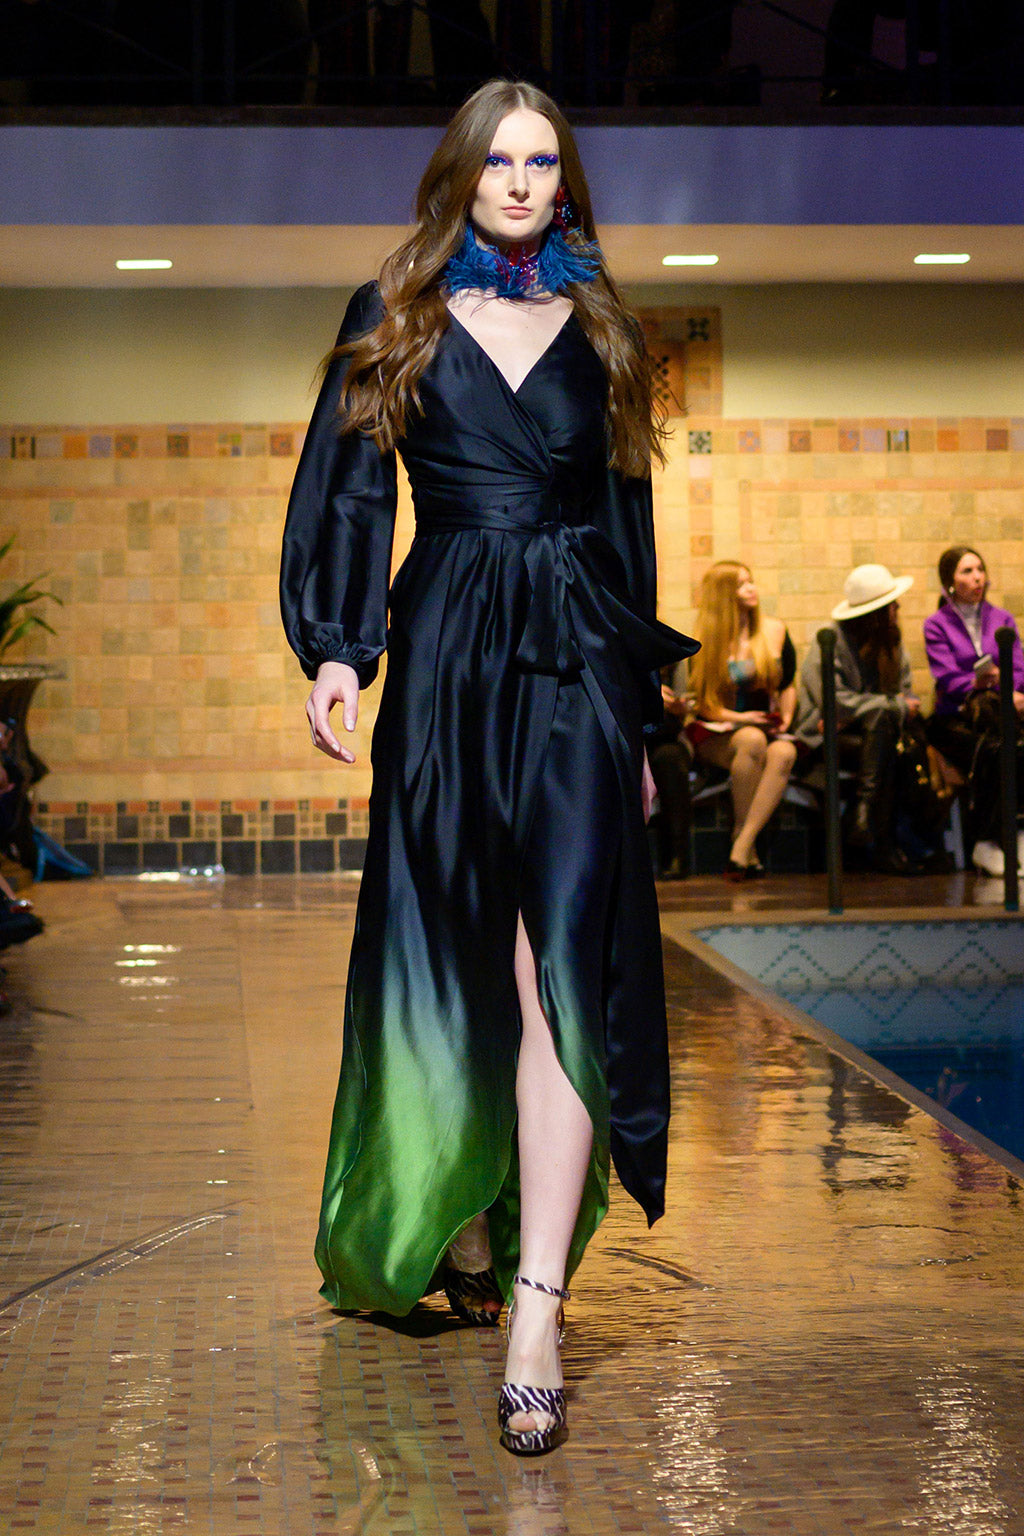 Cynthia Rowley Fall 2019 look 9 featuring a midi length wrap dress with green tie-dye effect at the bottom